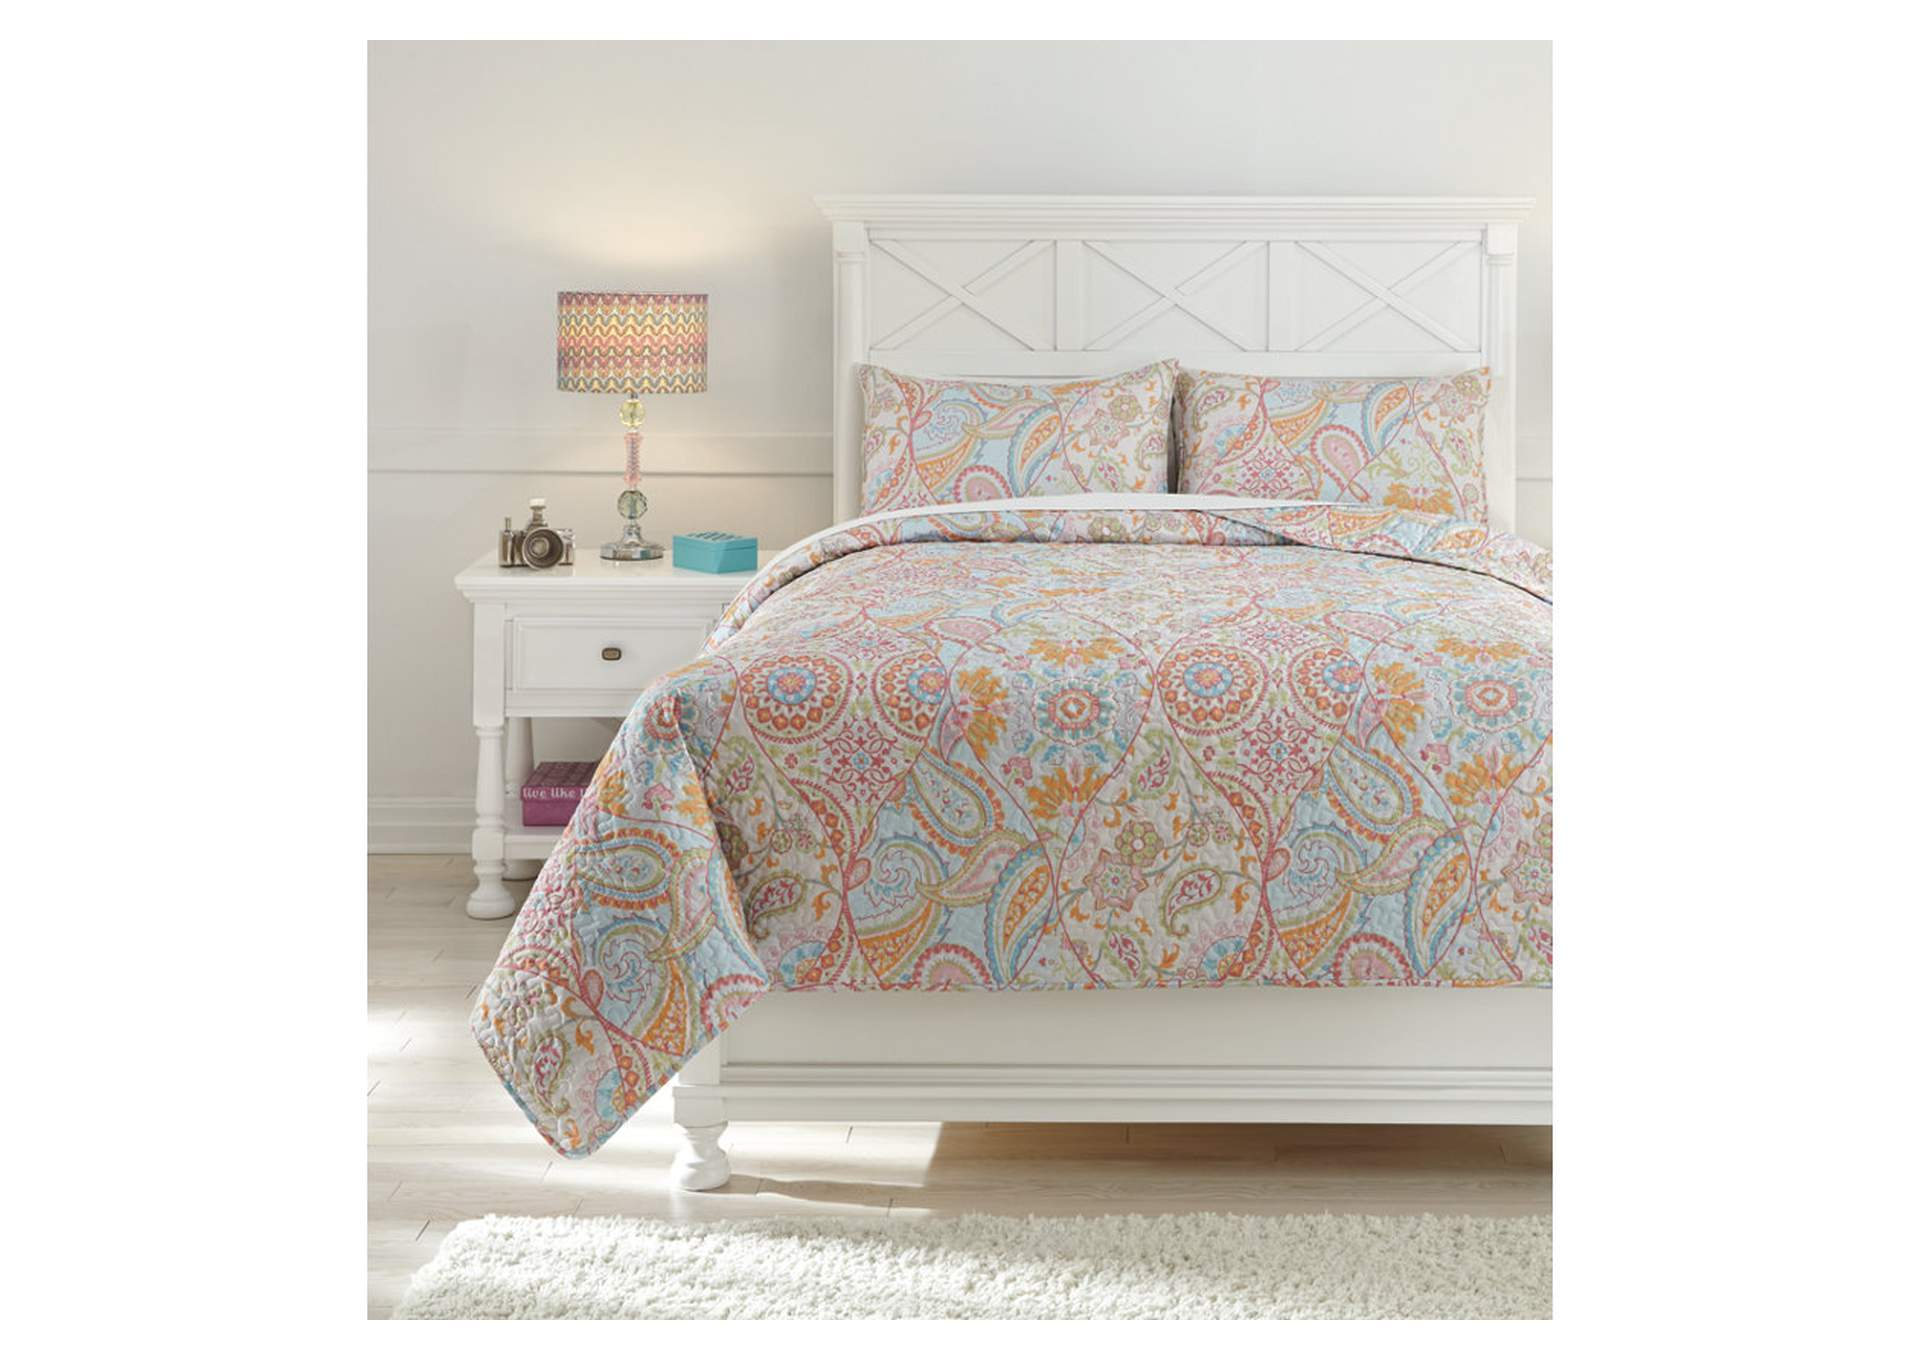 Jessamine Pink/Orange Full Coverlet Set,Signature Design By Ashley